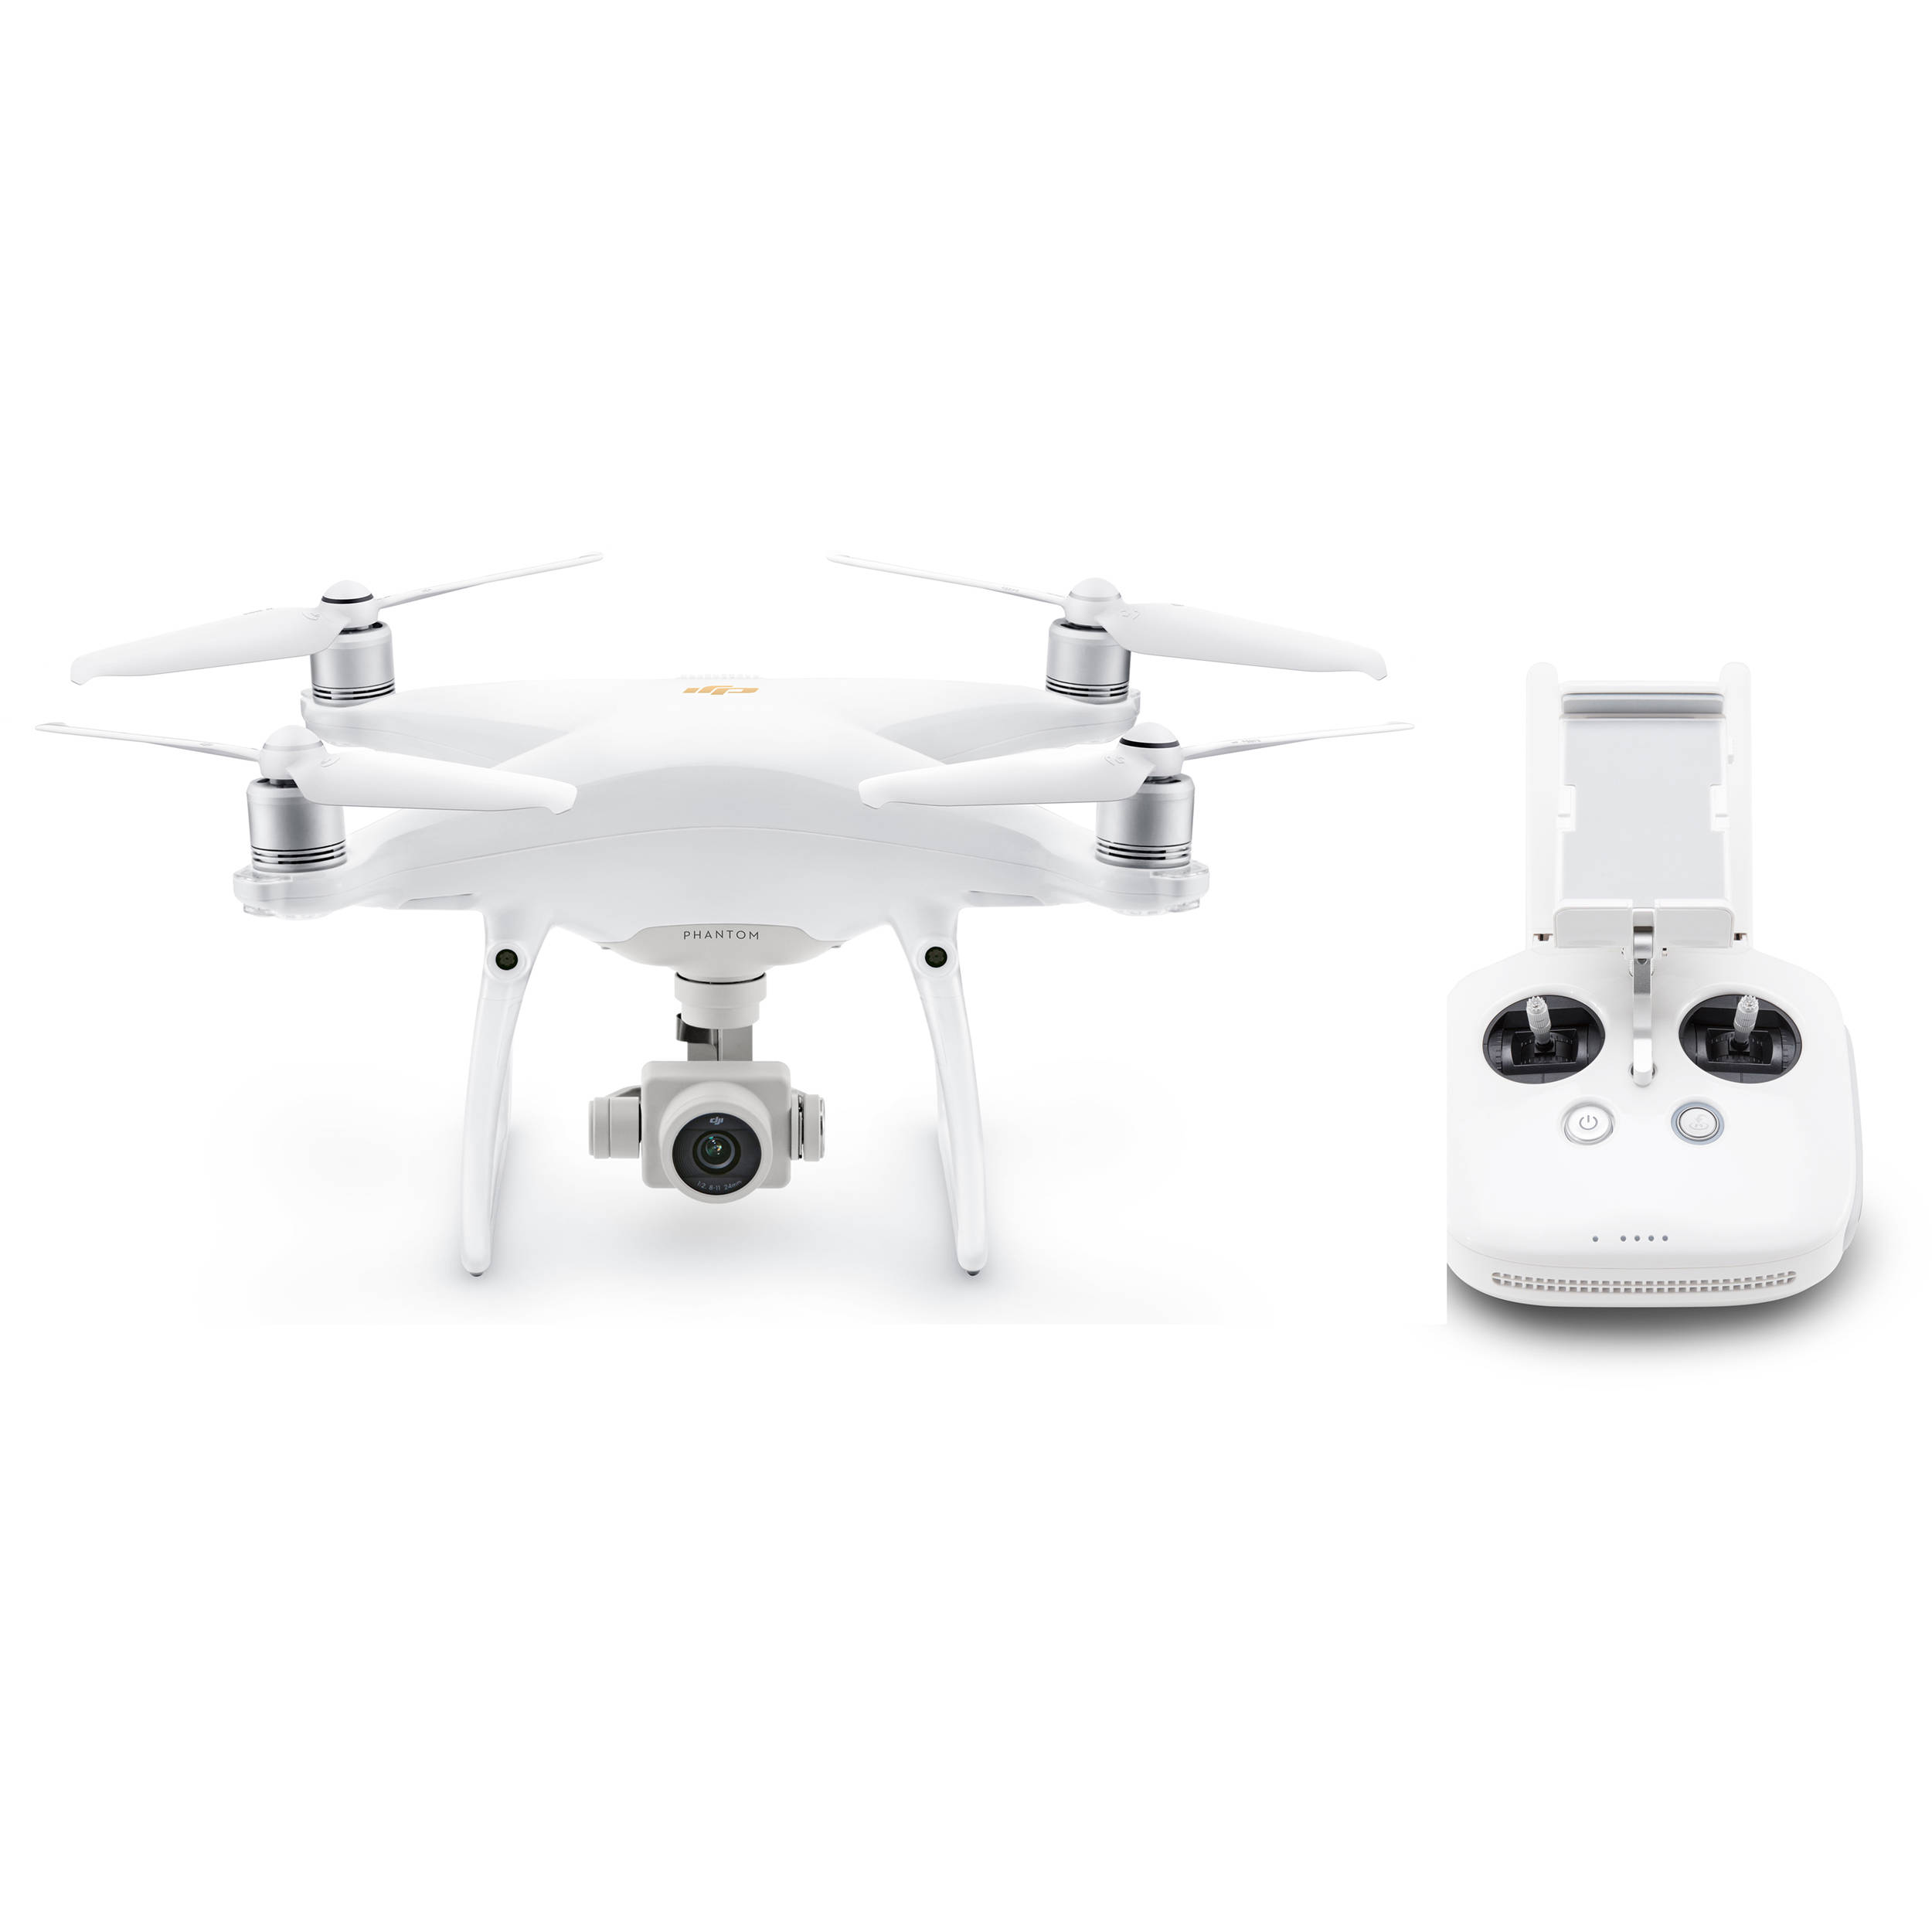 DJI Phantom 4 Pro Version 20 Quadcopter